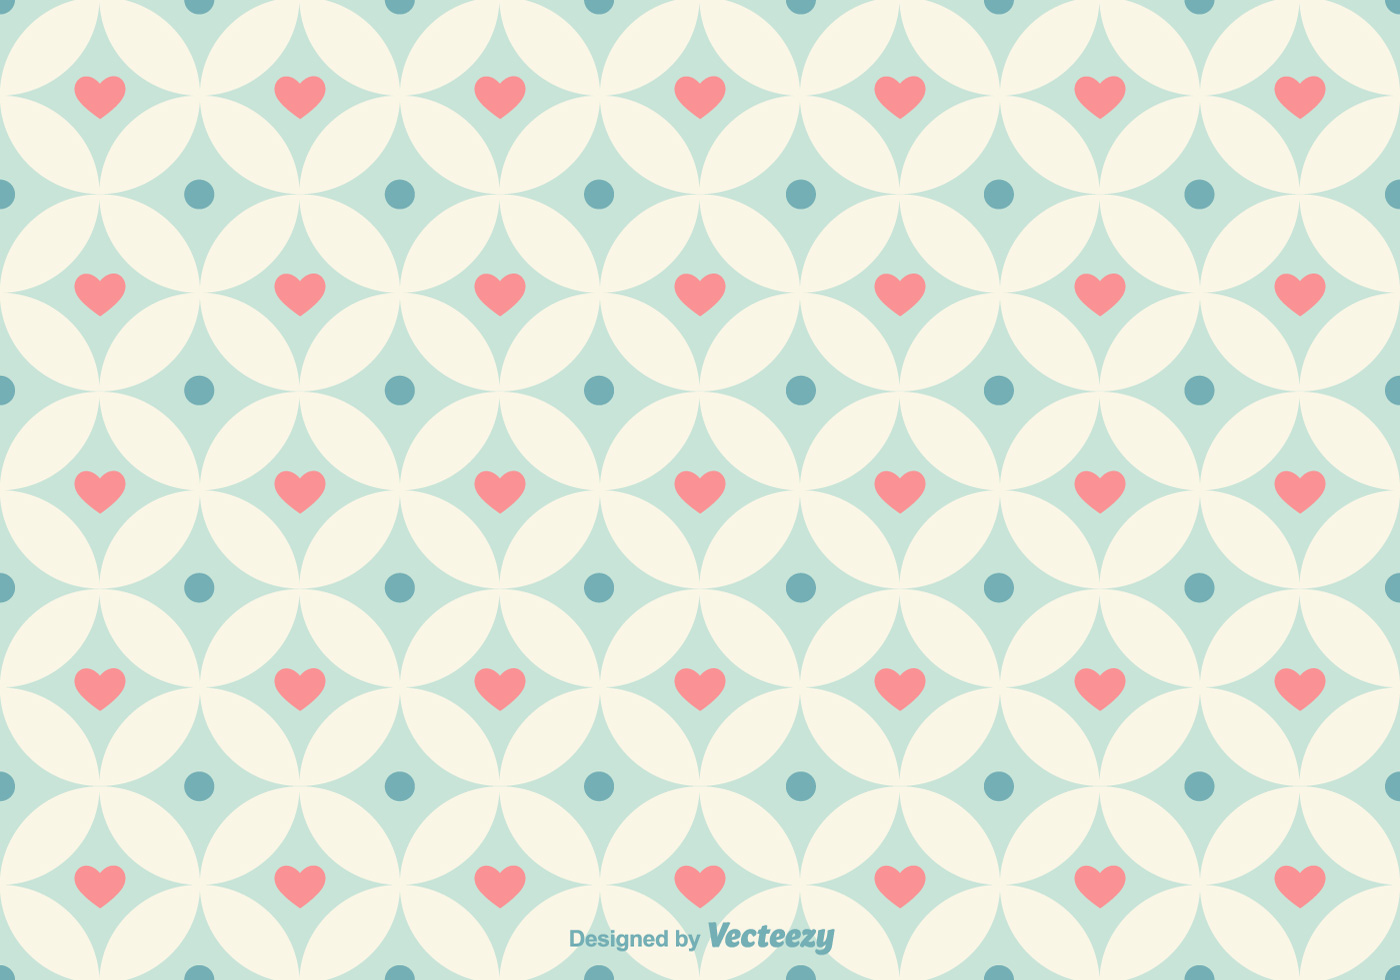 Geometrical Hearts Vector Pattern Download Free Vector